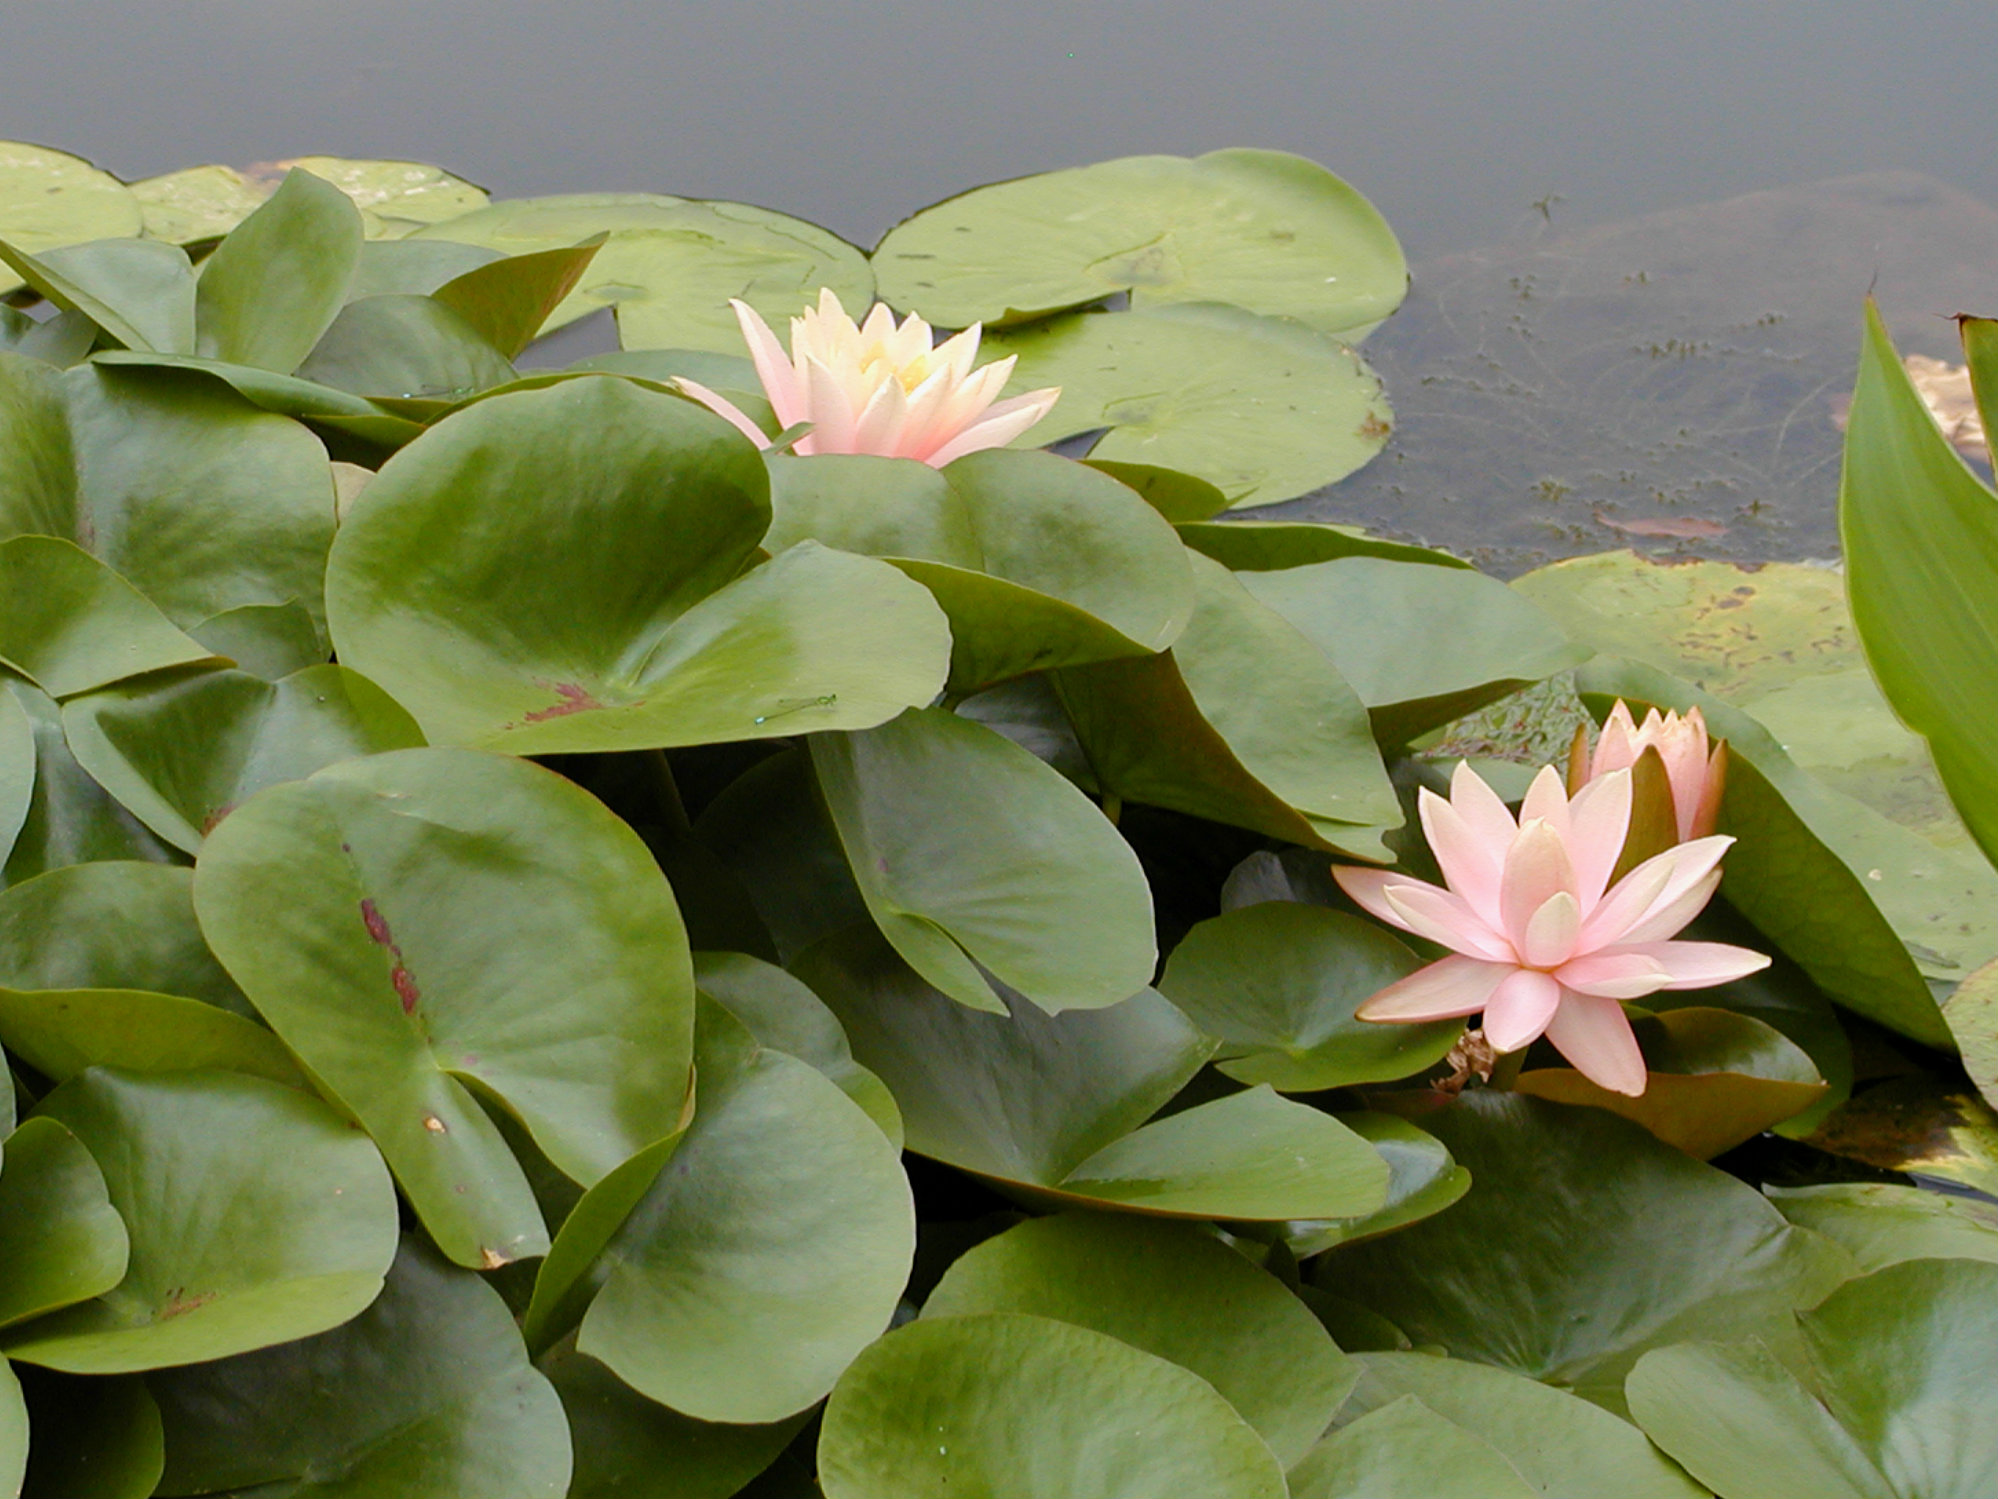 Biltmore Italian Garden Pale Pink Lilypad Flowers August 2011